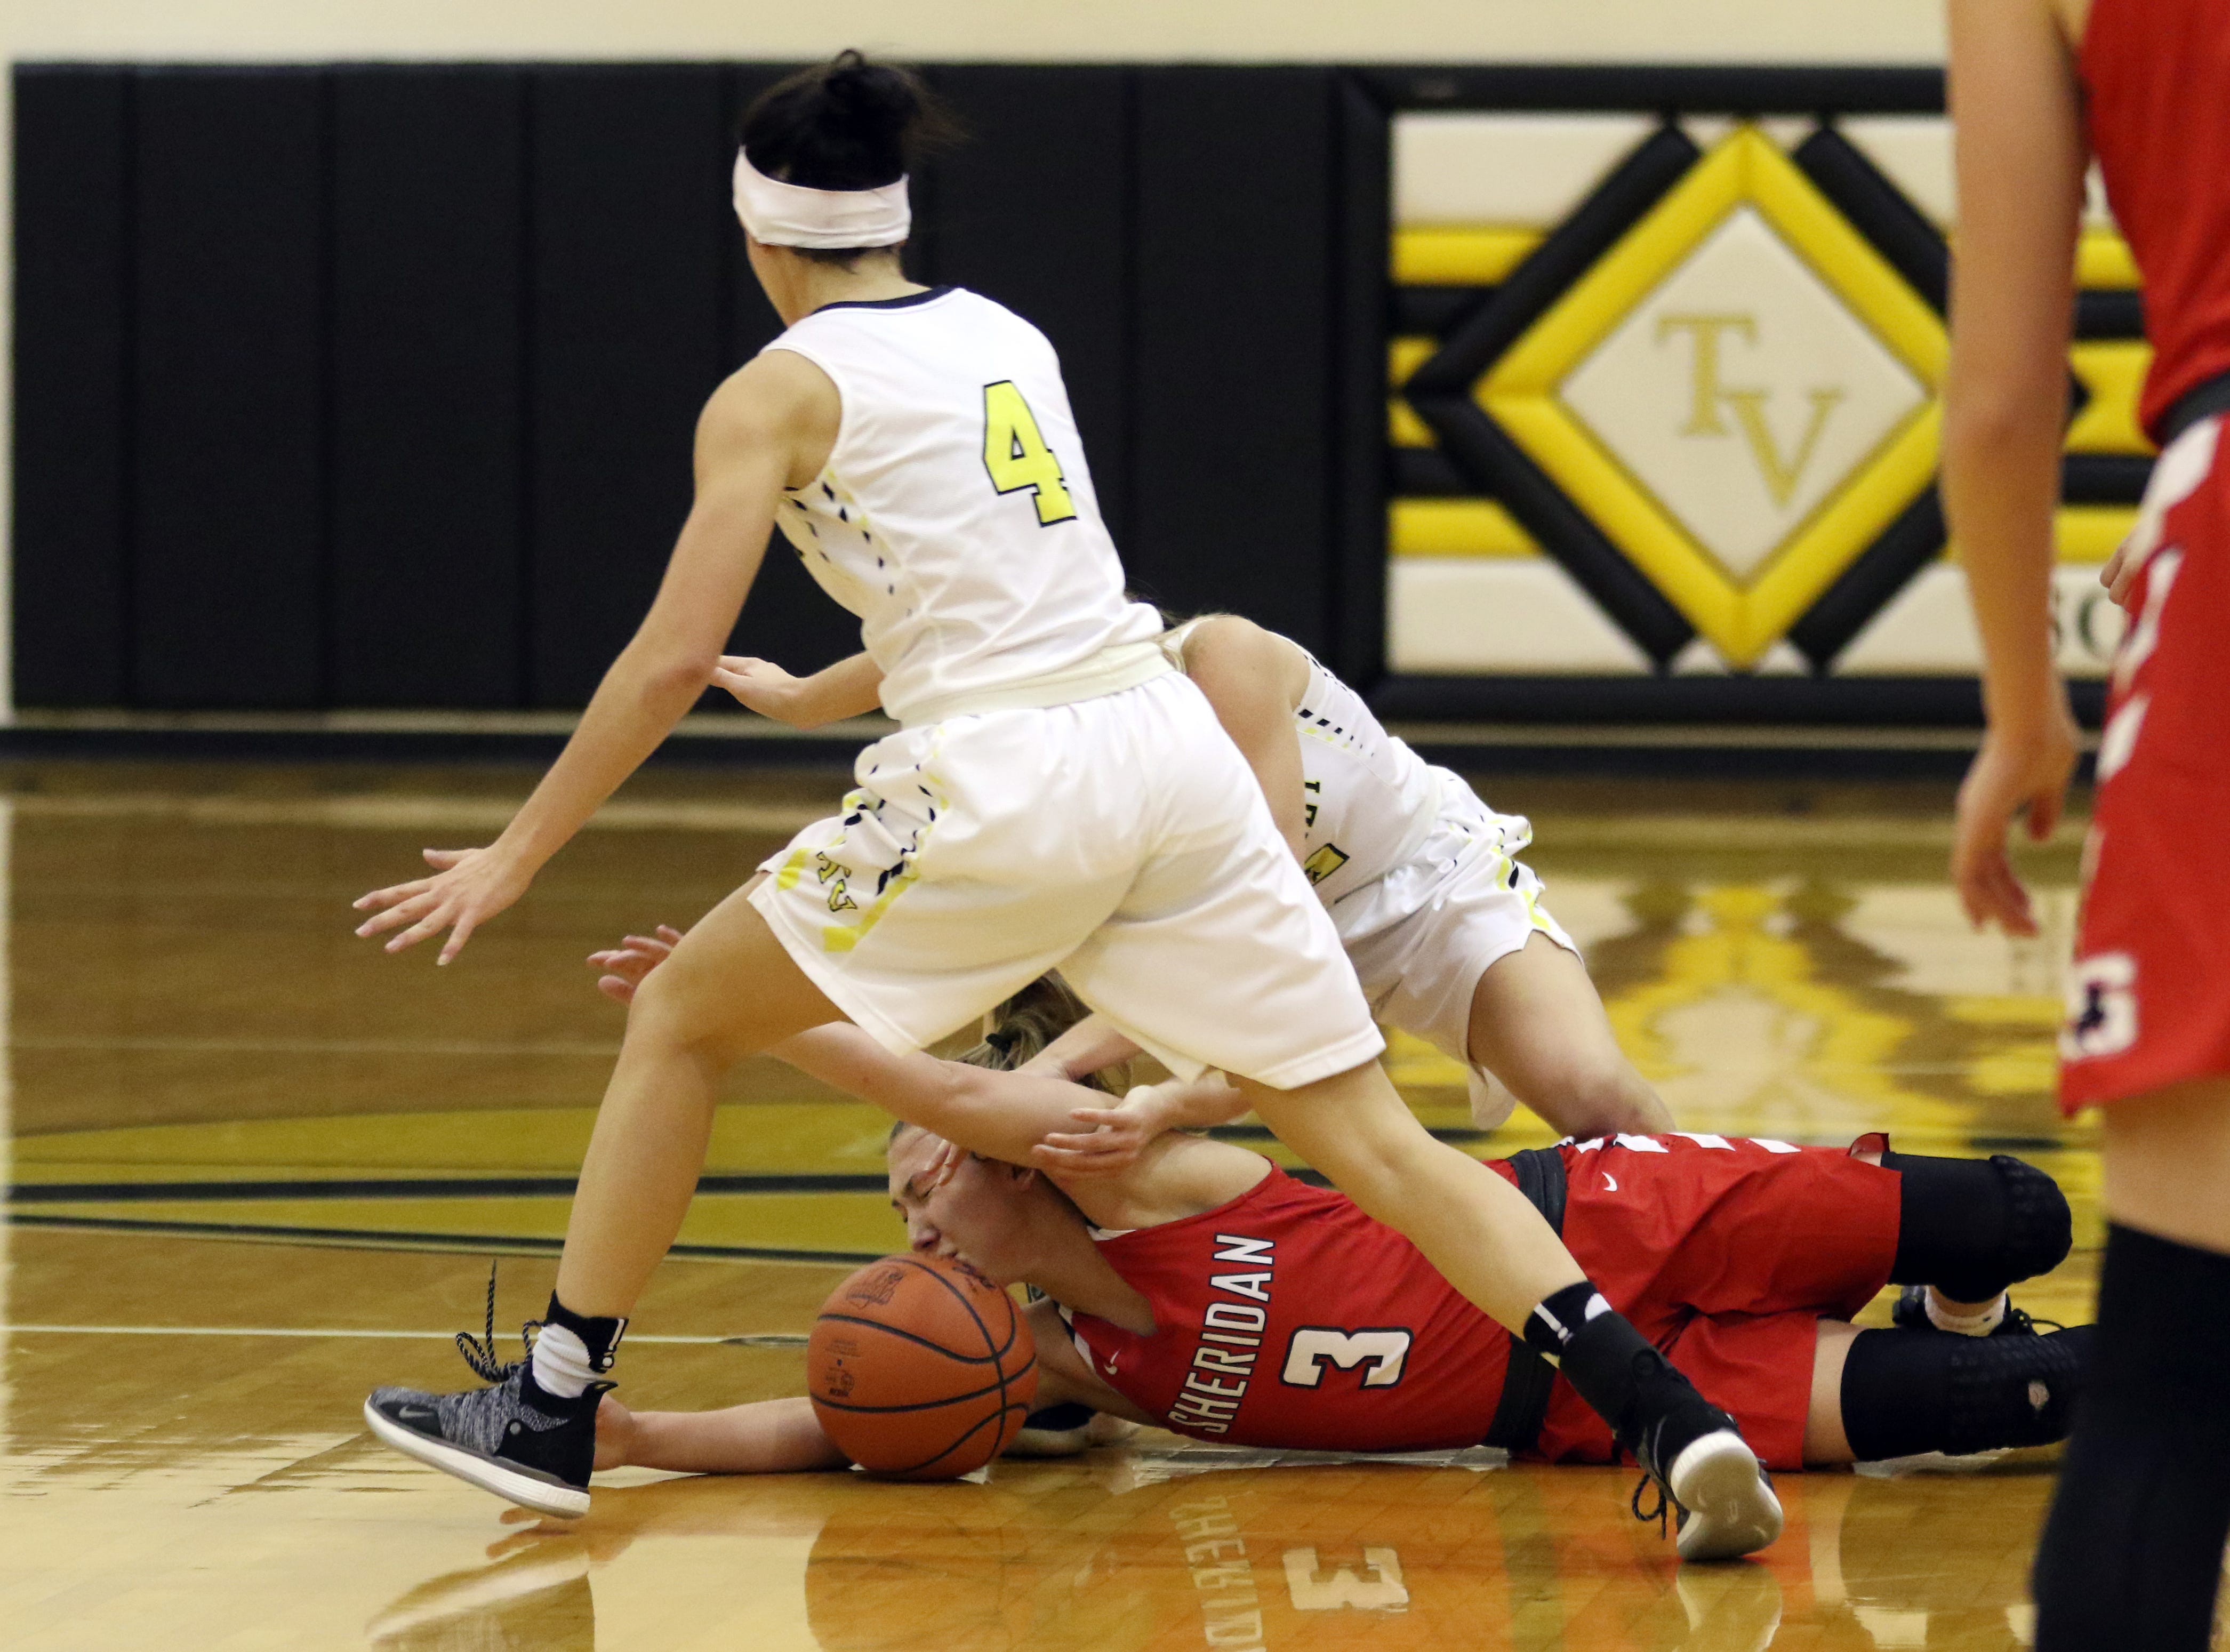 Tri-Valley rode their defense to a win over the visiting Sheridan Generals Wednesday night in Dresden.